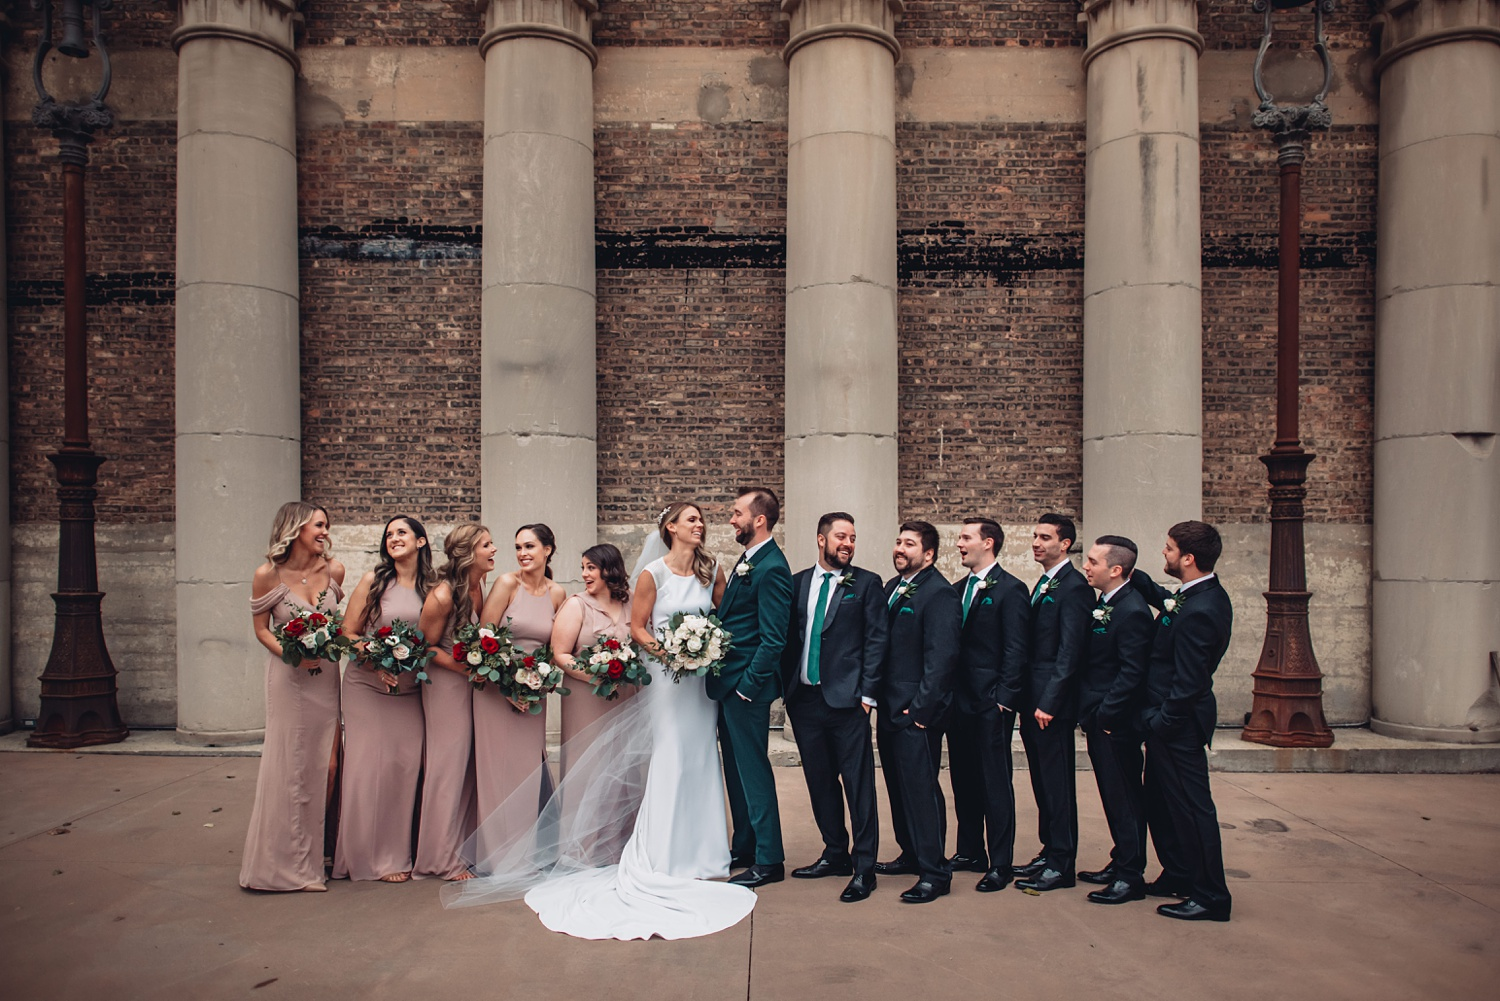 Artifact Events Fall Chicago Wedding - The Adamkovi wedding party. courtyard